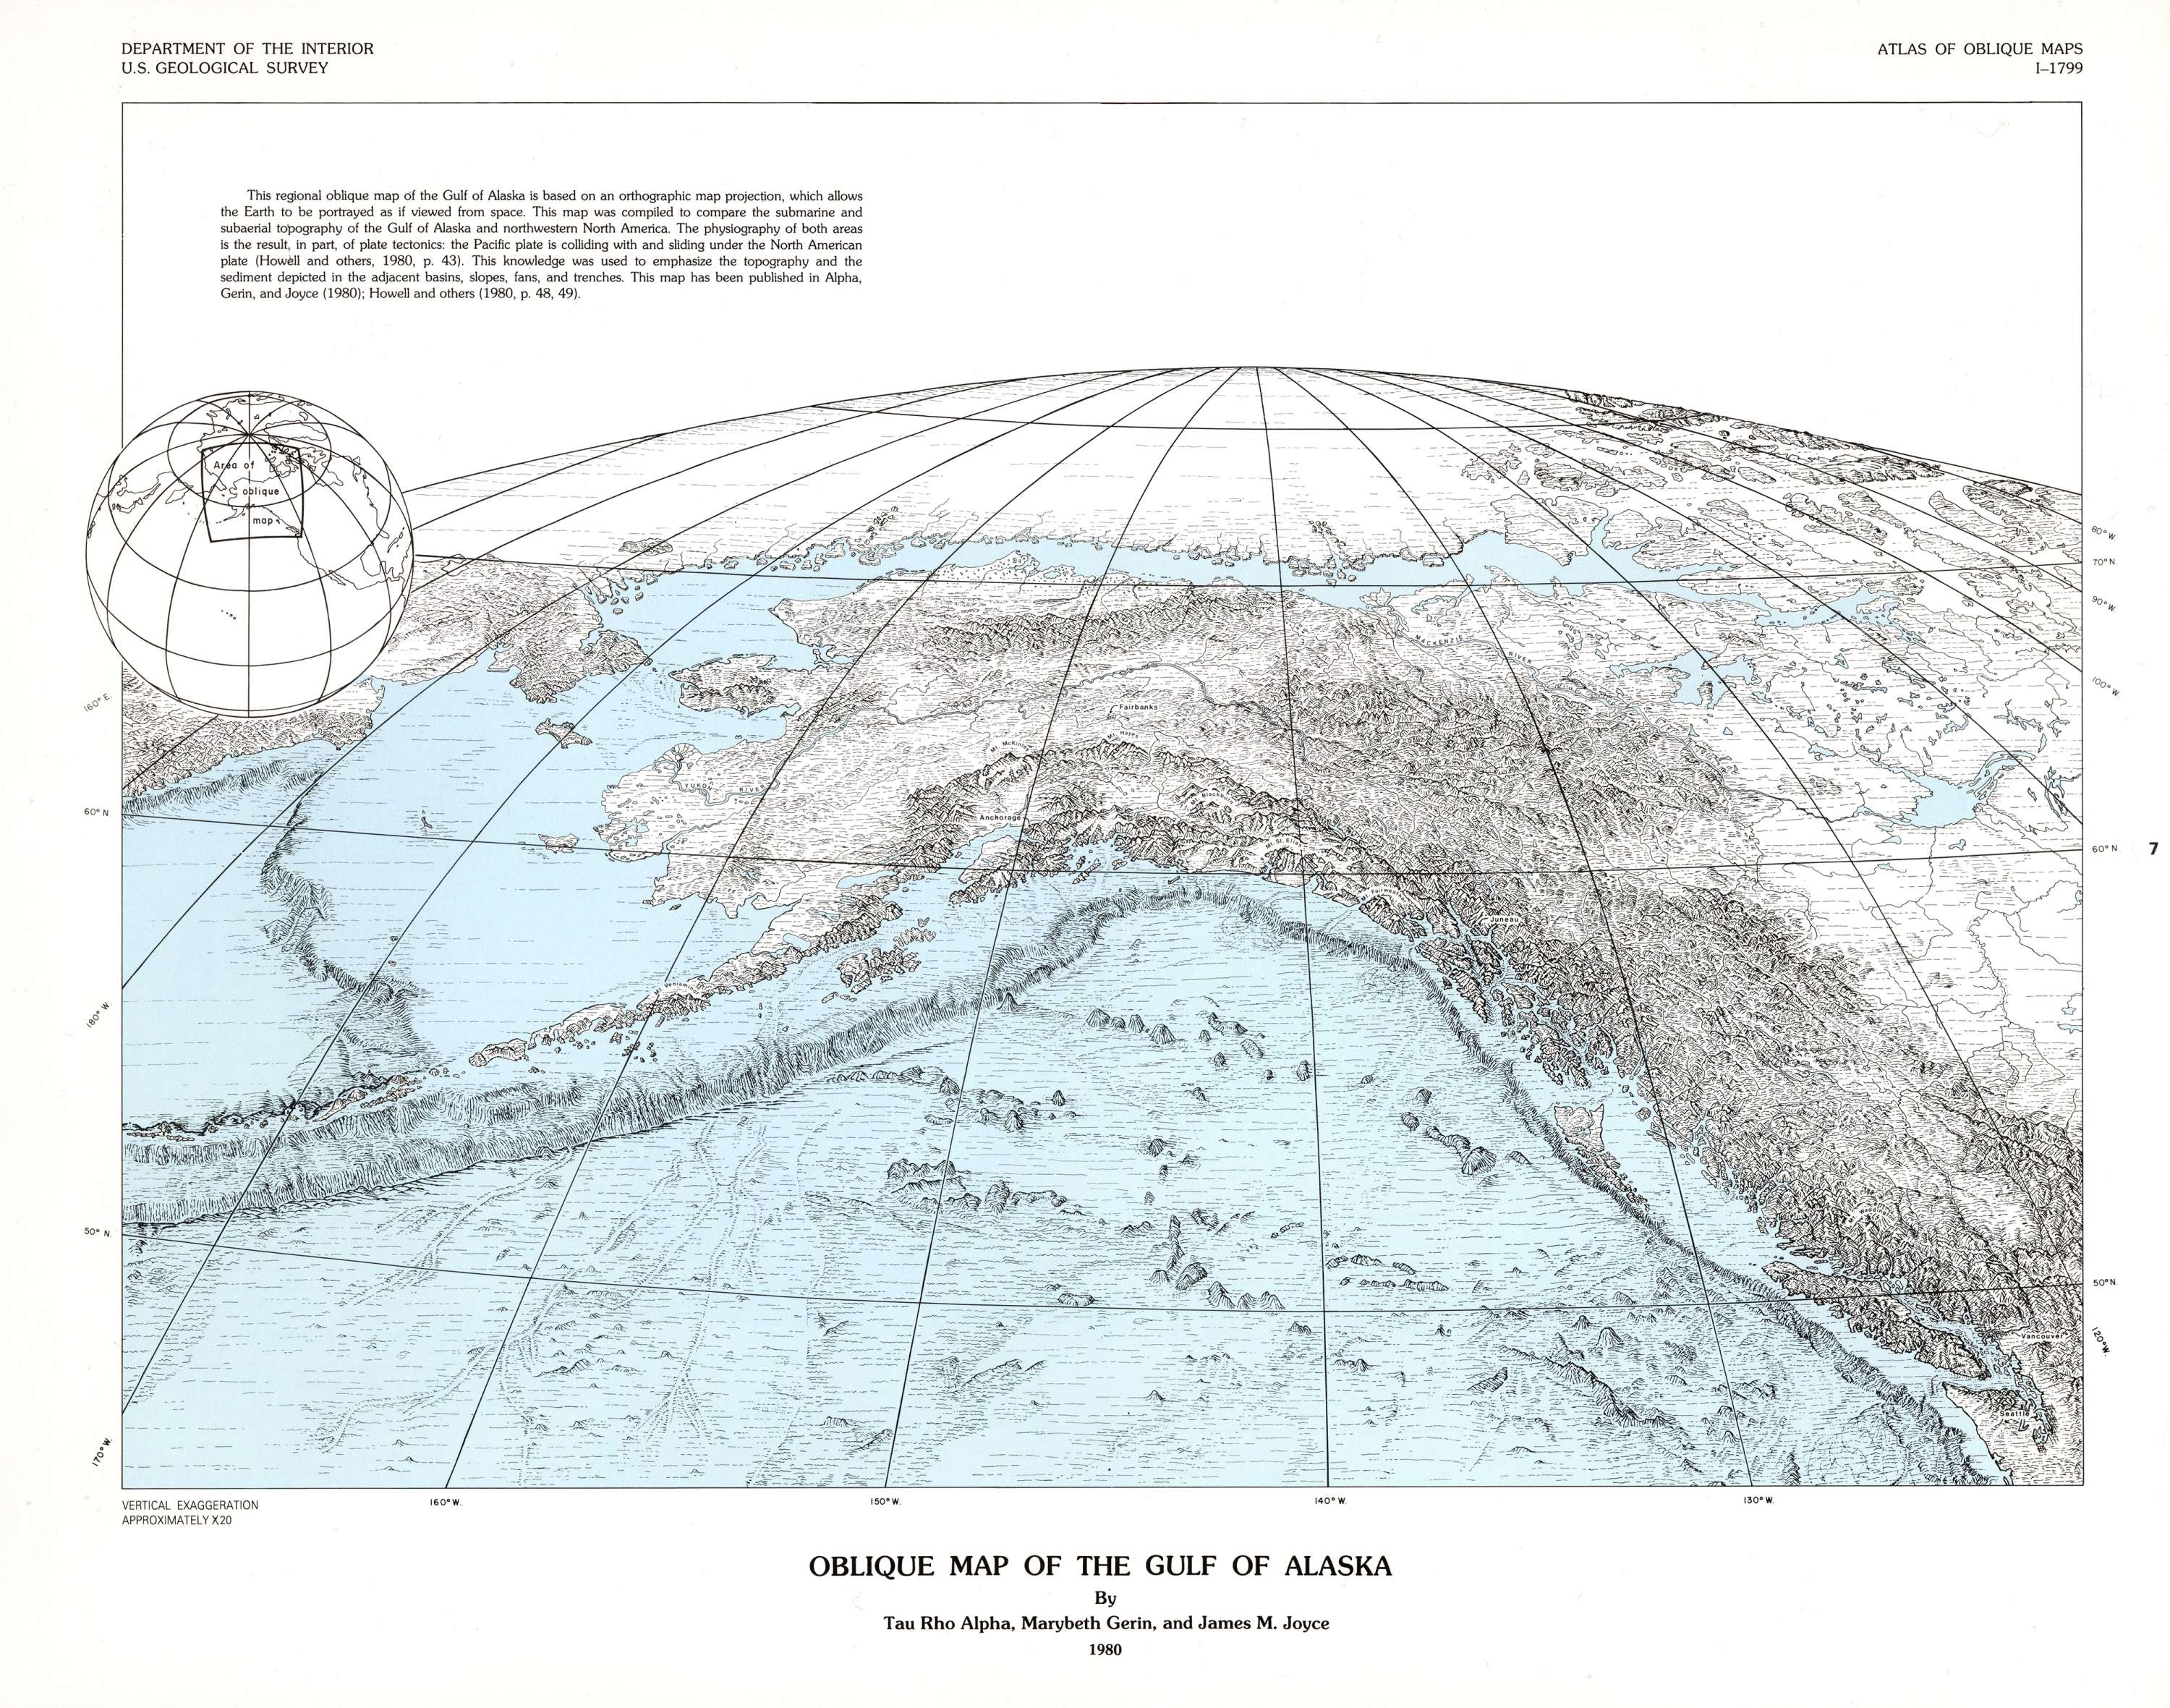 Oblique Maps of the North Pacific Ocean